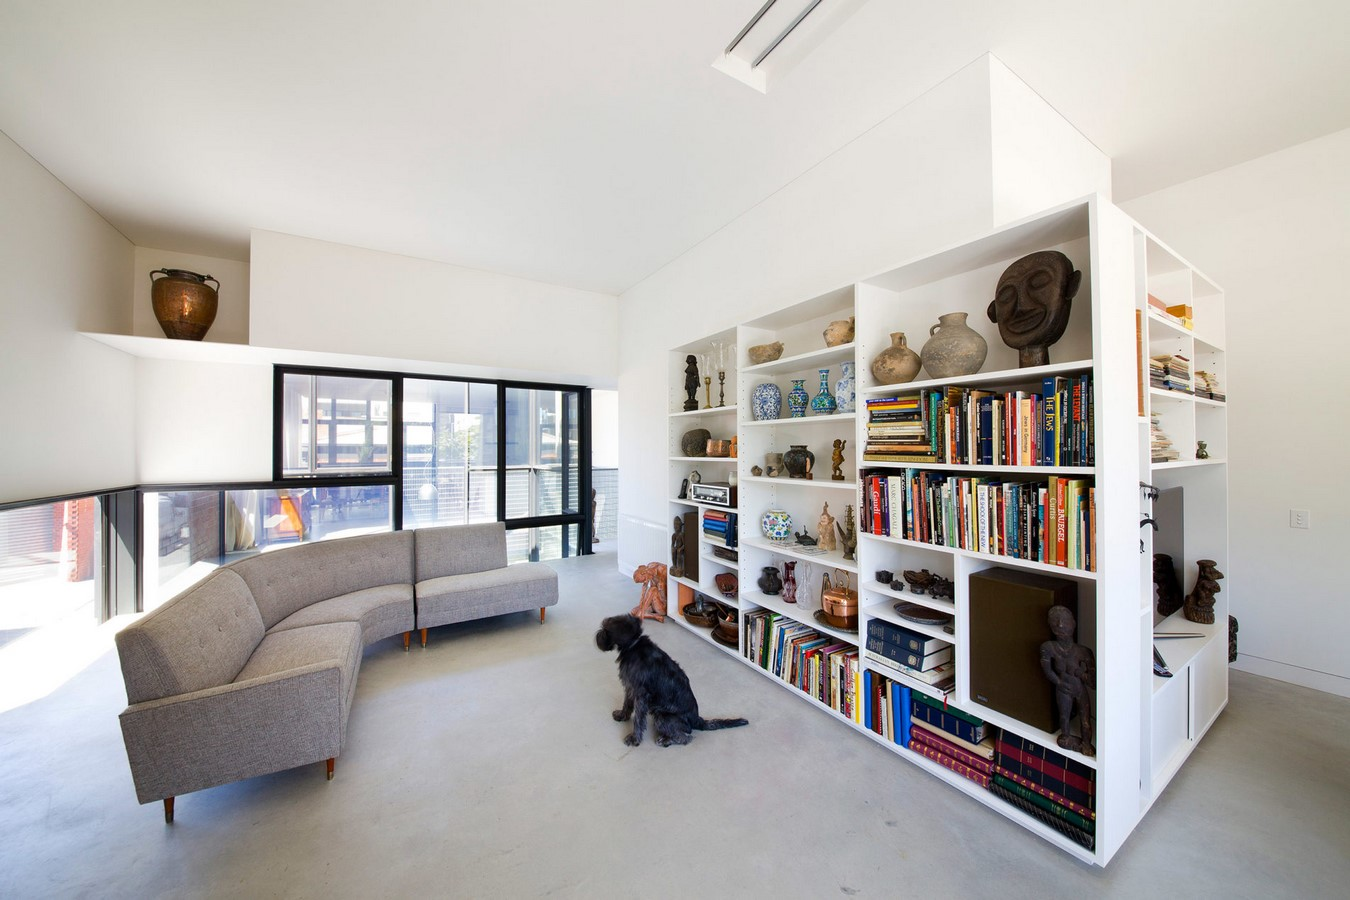 Queensberry Street House by Robert Simeoni Architects - Sheet2